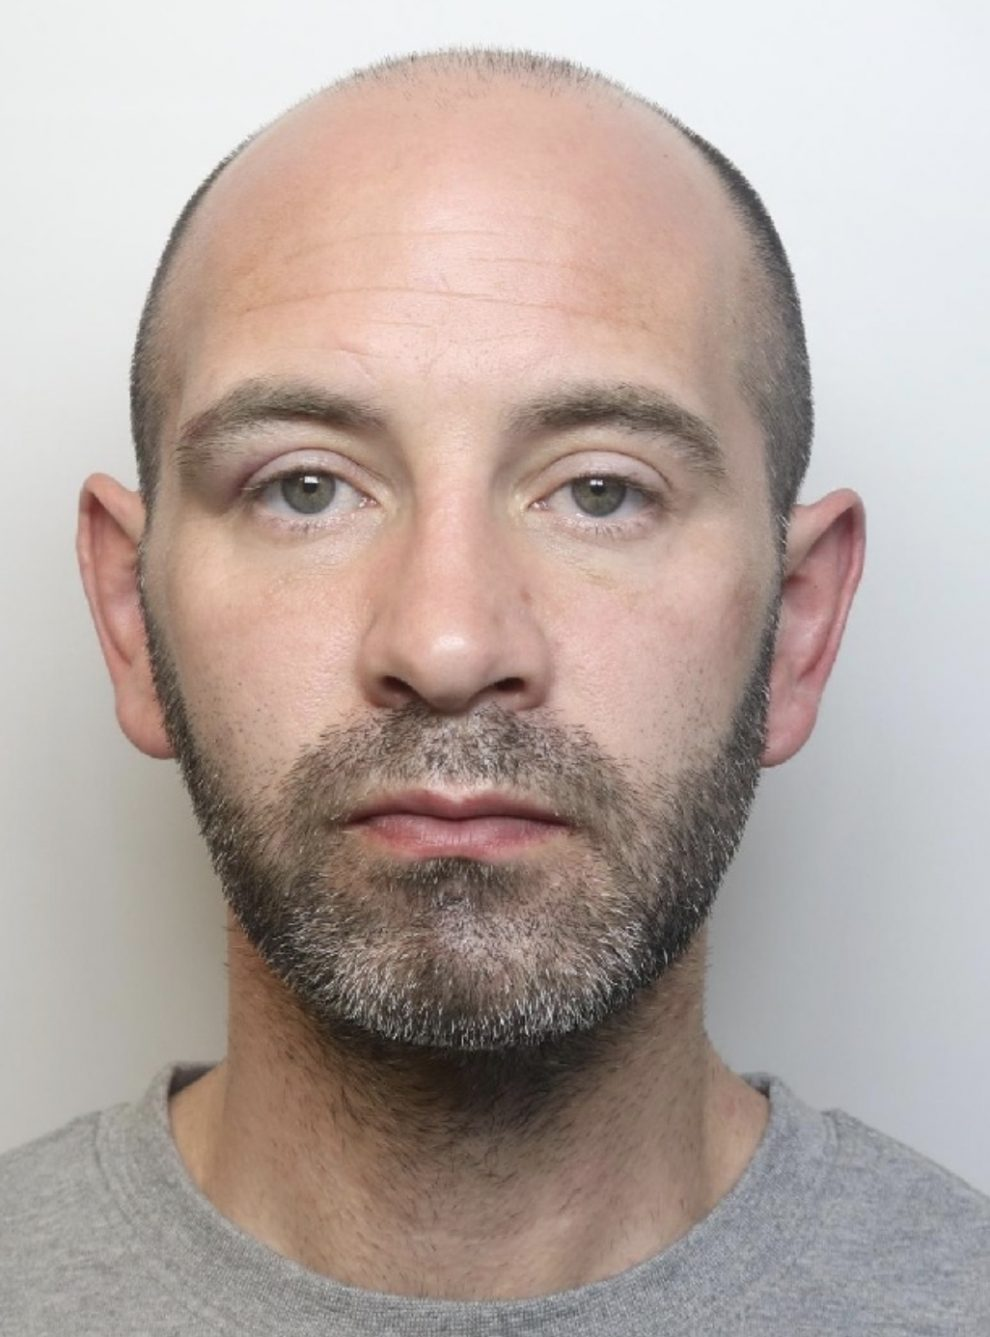 Christopher Howard, 40, leaded guilty to four counts of assaulting an officer, criminal damage and two counts of theft, UKNIP